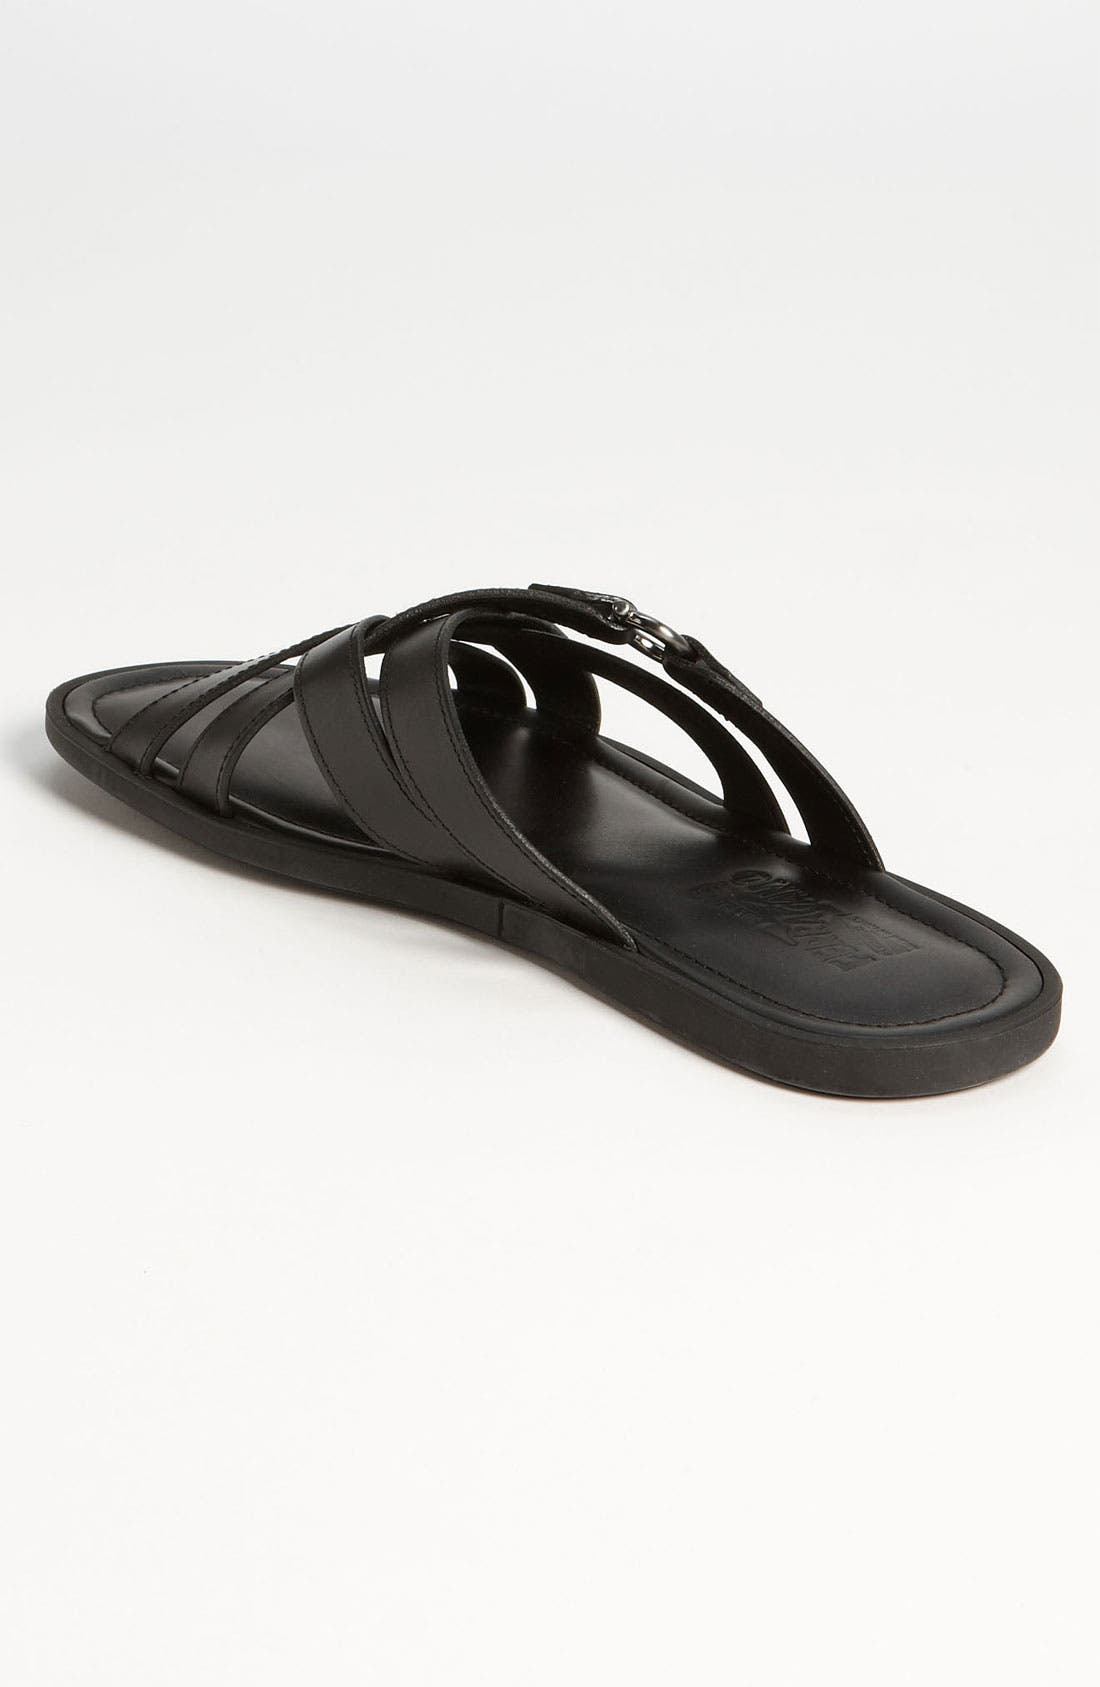 Alternate Image 2  - Salvatore Ferragamo 'Tirreno' Cross Strap Sandal